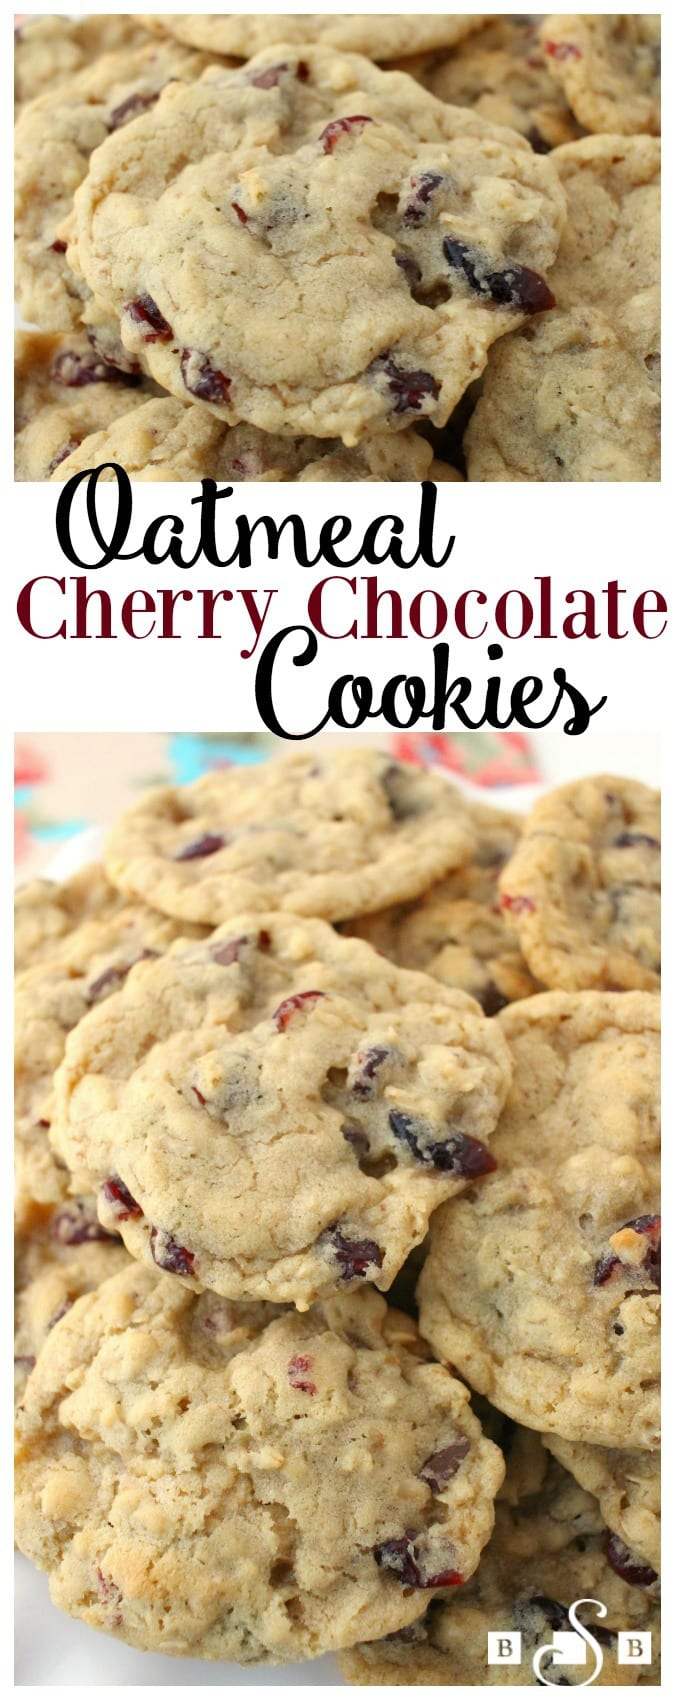 Today I want to share a delightful Oatmeal cookie recipe with you. It has great flavor and I love the crispy on the outside, chewy on the inside texture. I used Craisins® - Cherry Juice Infusedbut feel free to swap in any type of Craisins® that you'd like! Be sure to scroll down to see the video of how I incorporated Craisins® into my day- including making these cookies!